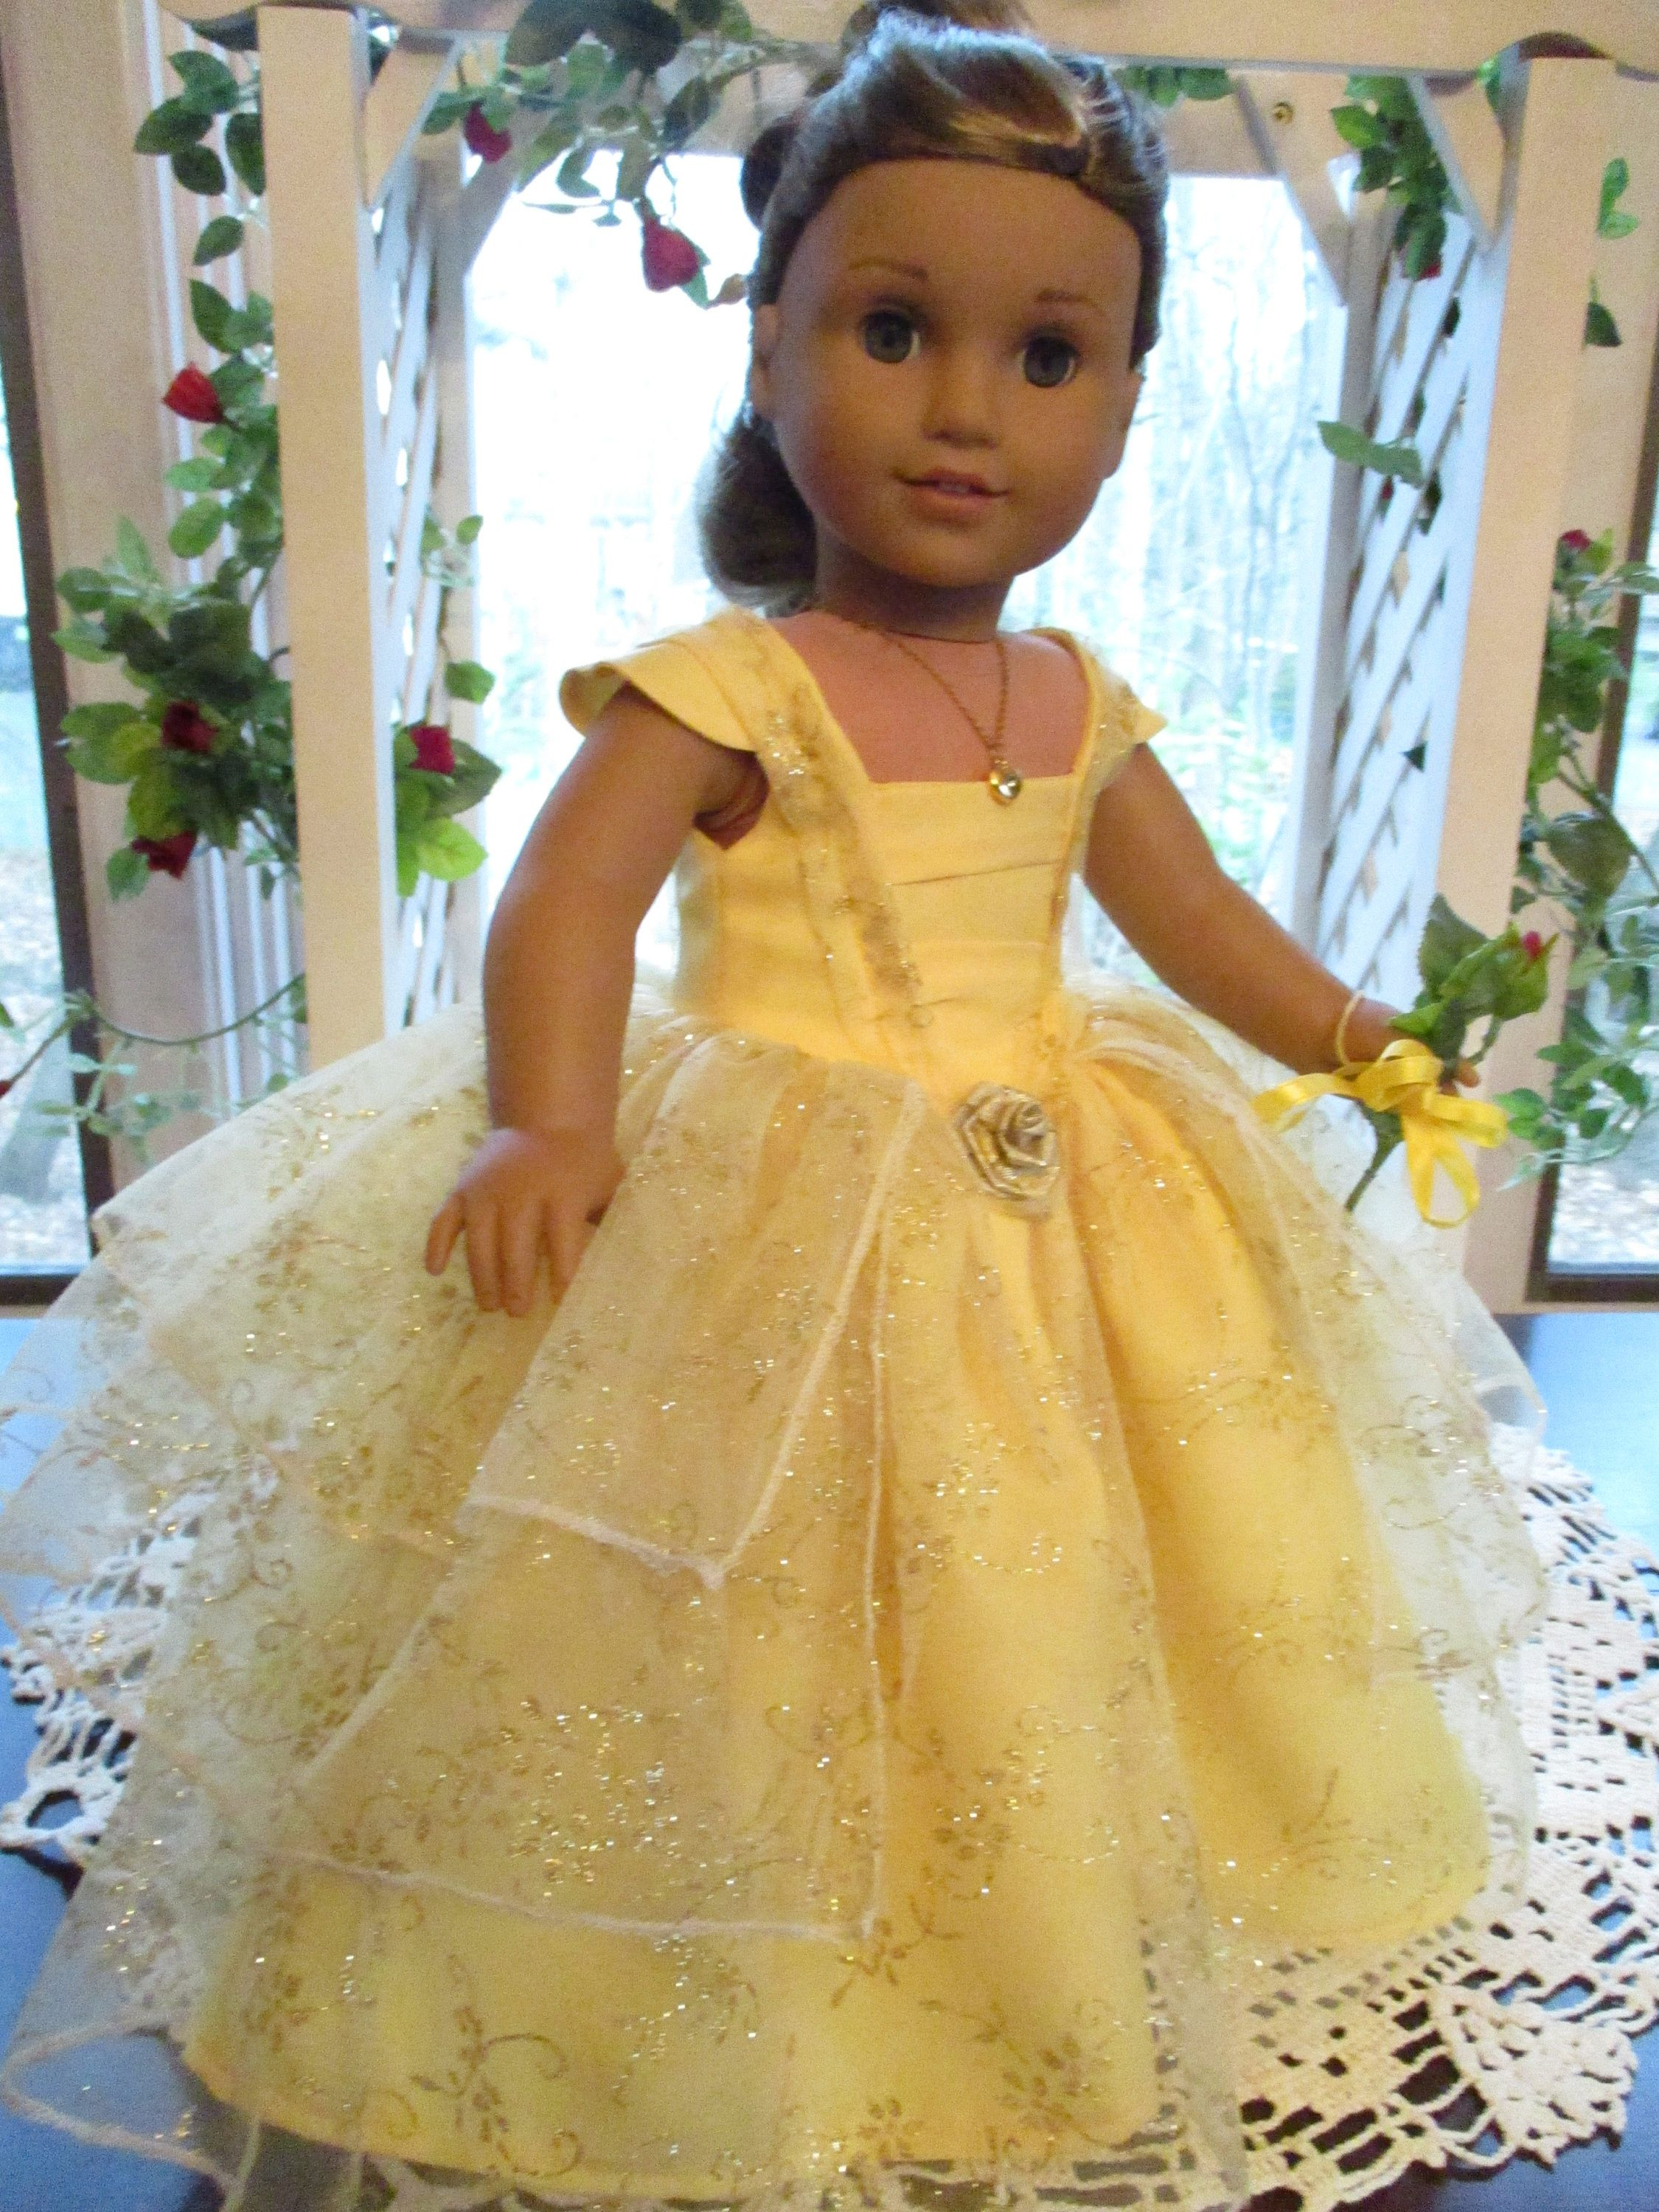 18inch Doll Raincoat for AG American Doll Doll Dress up Outfit Accessory Yellow